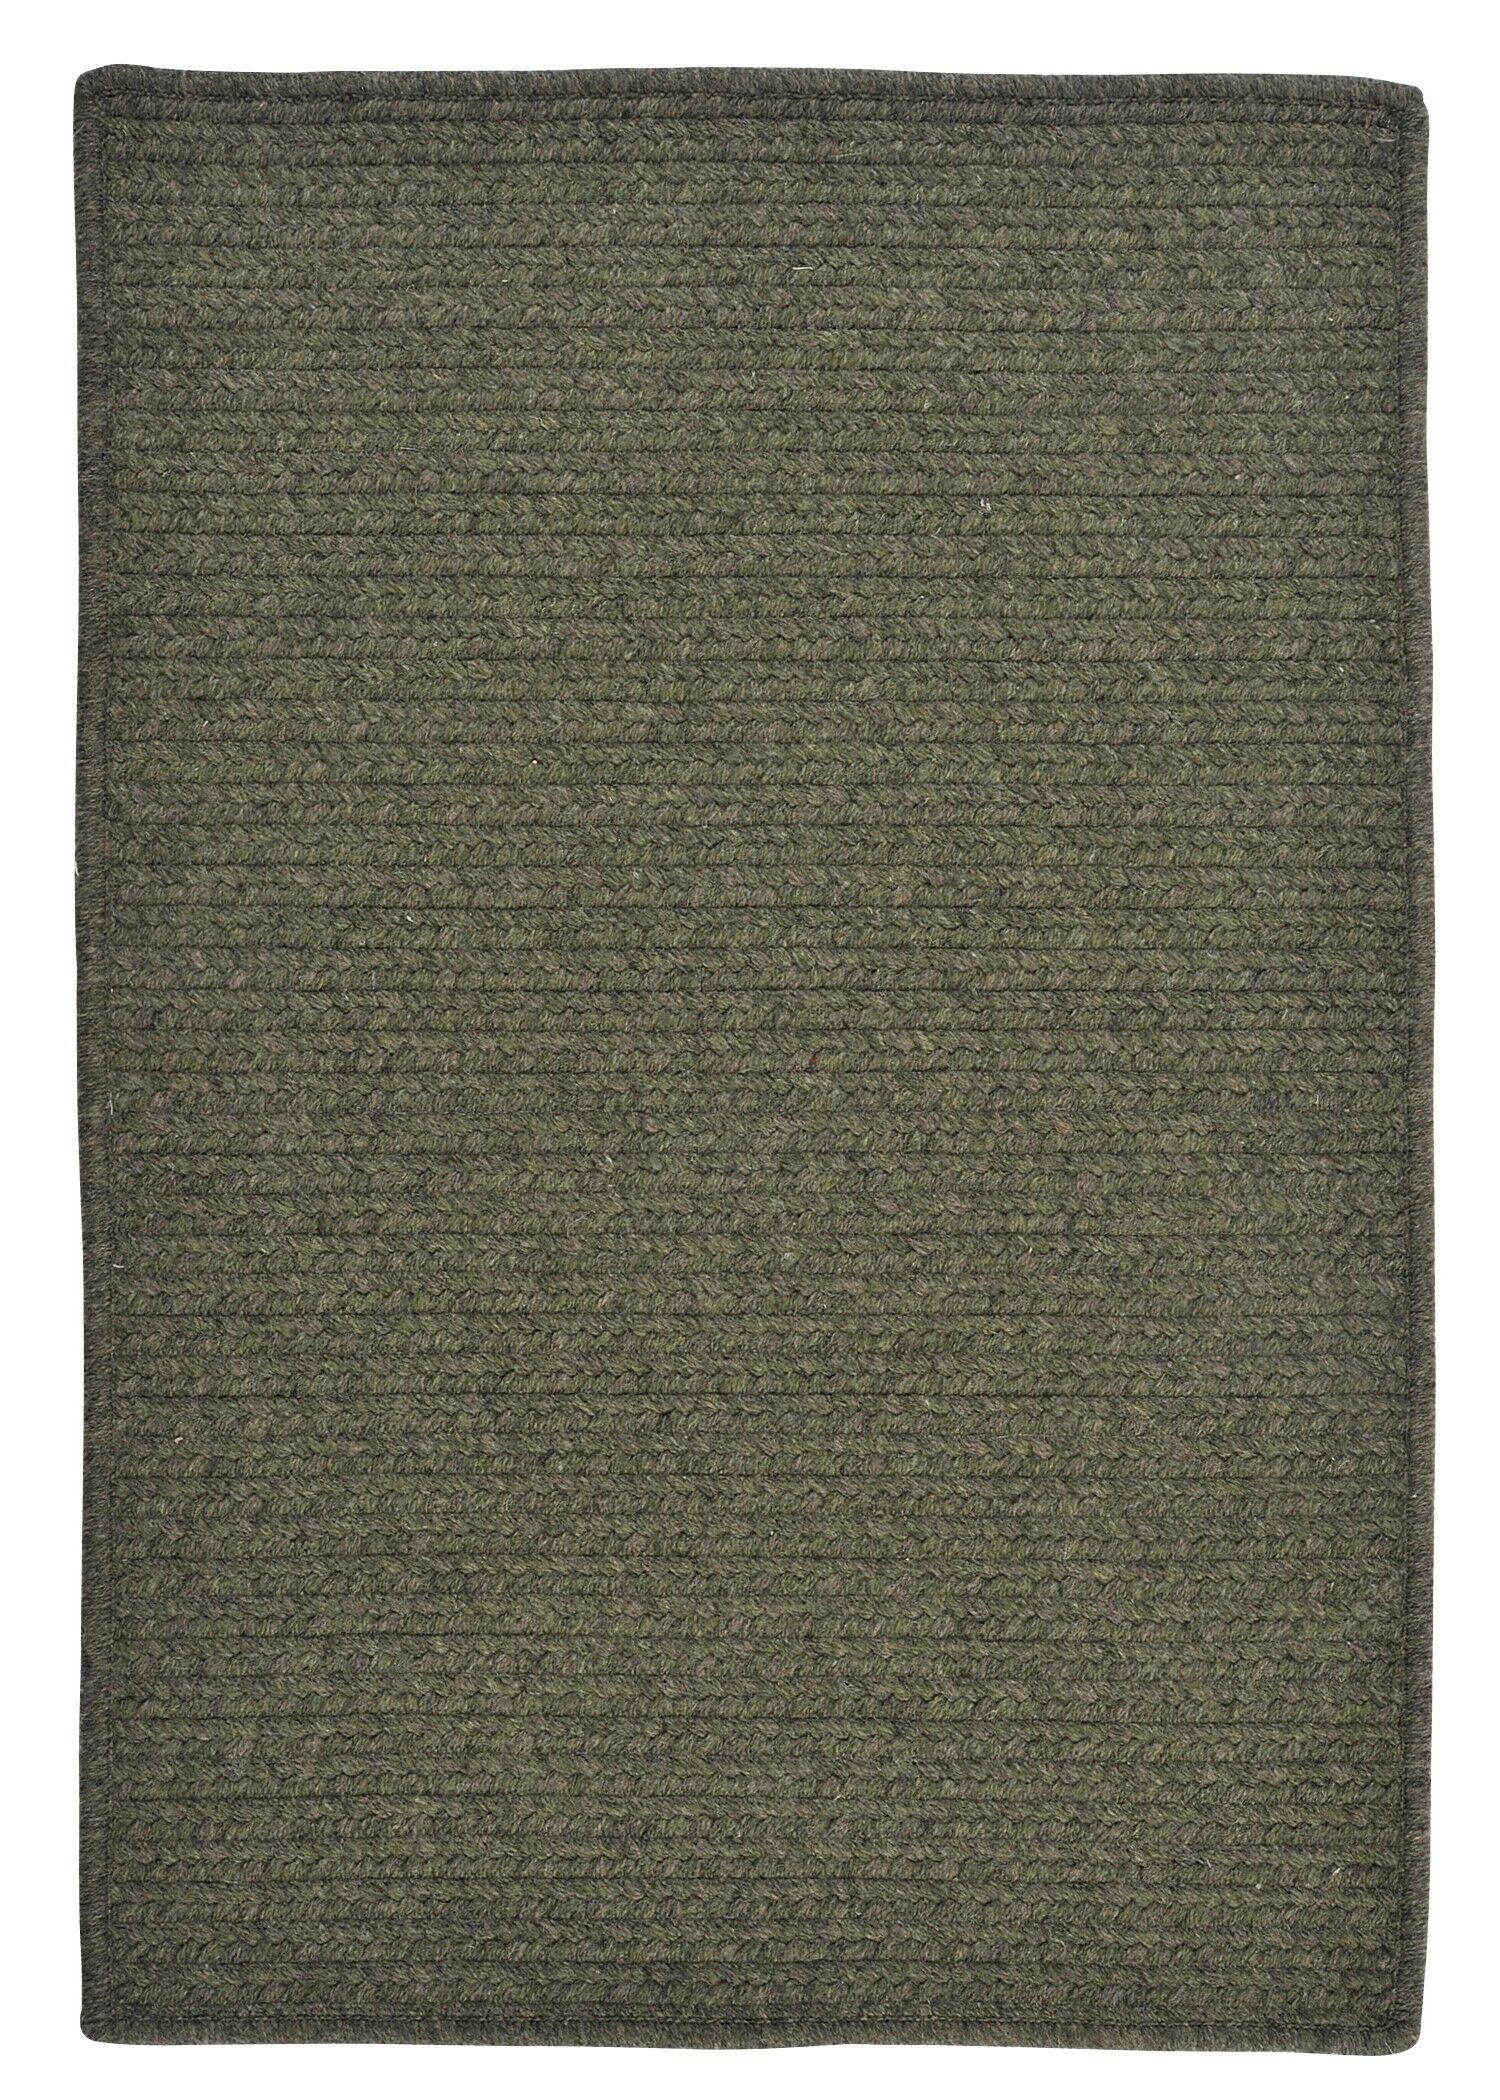 Courtyard Olive Rug Rug Size: Rectangle 5' x 8'